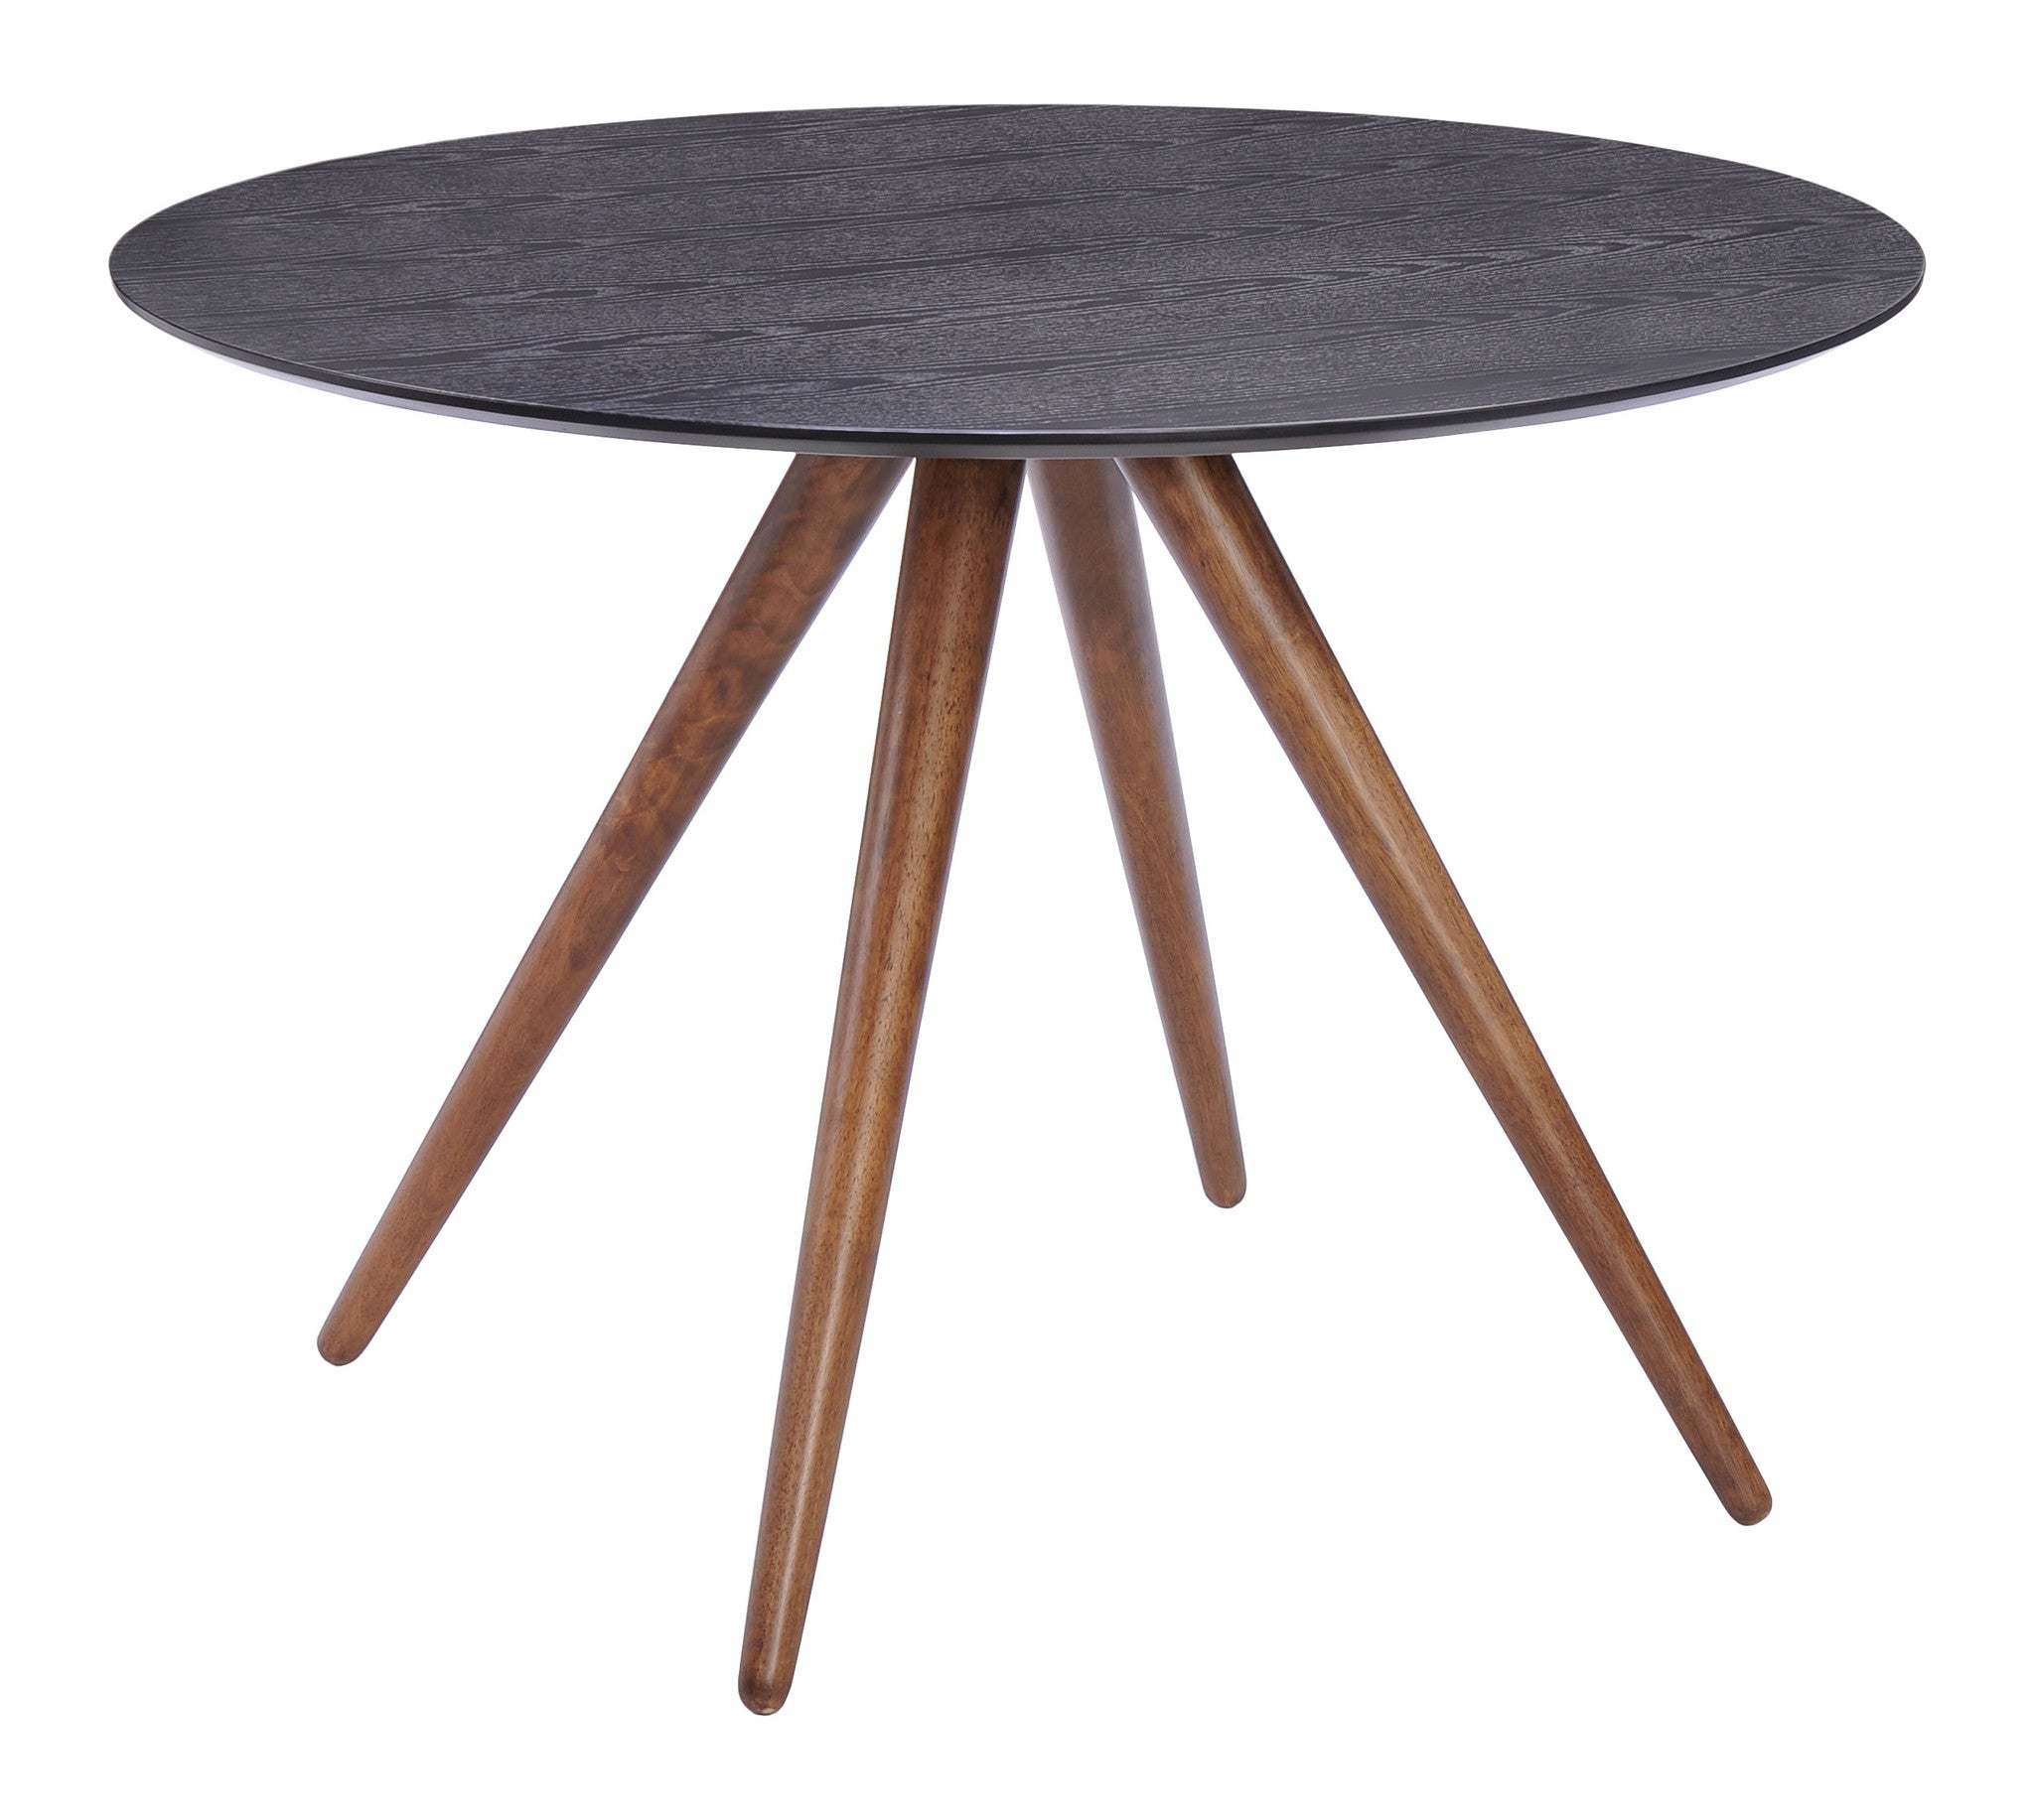 Grapeland Heights Dining Table With Walnut Finish Splayed Legs U0026 Black Wood  Top Dining Tables ...